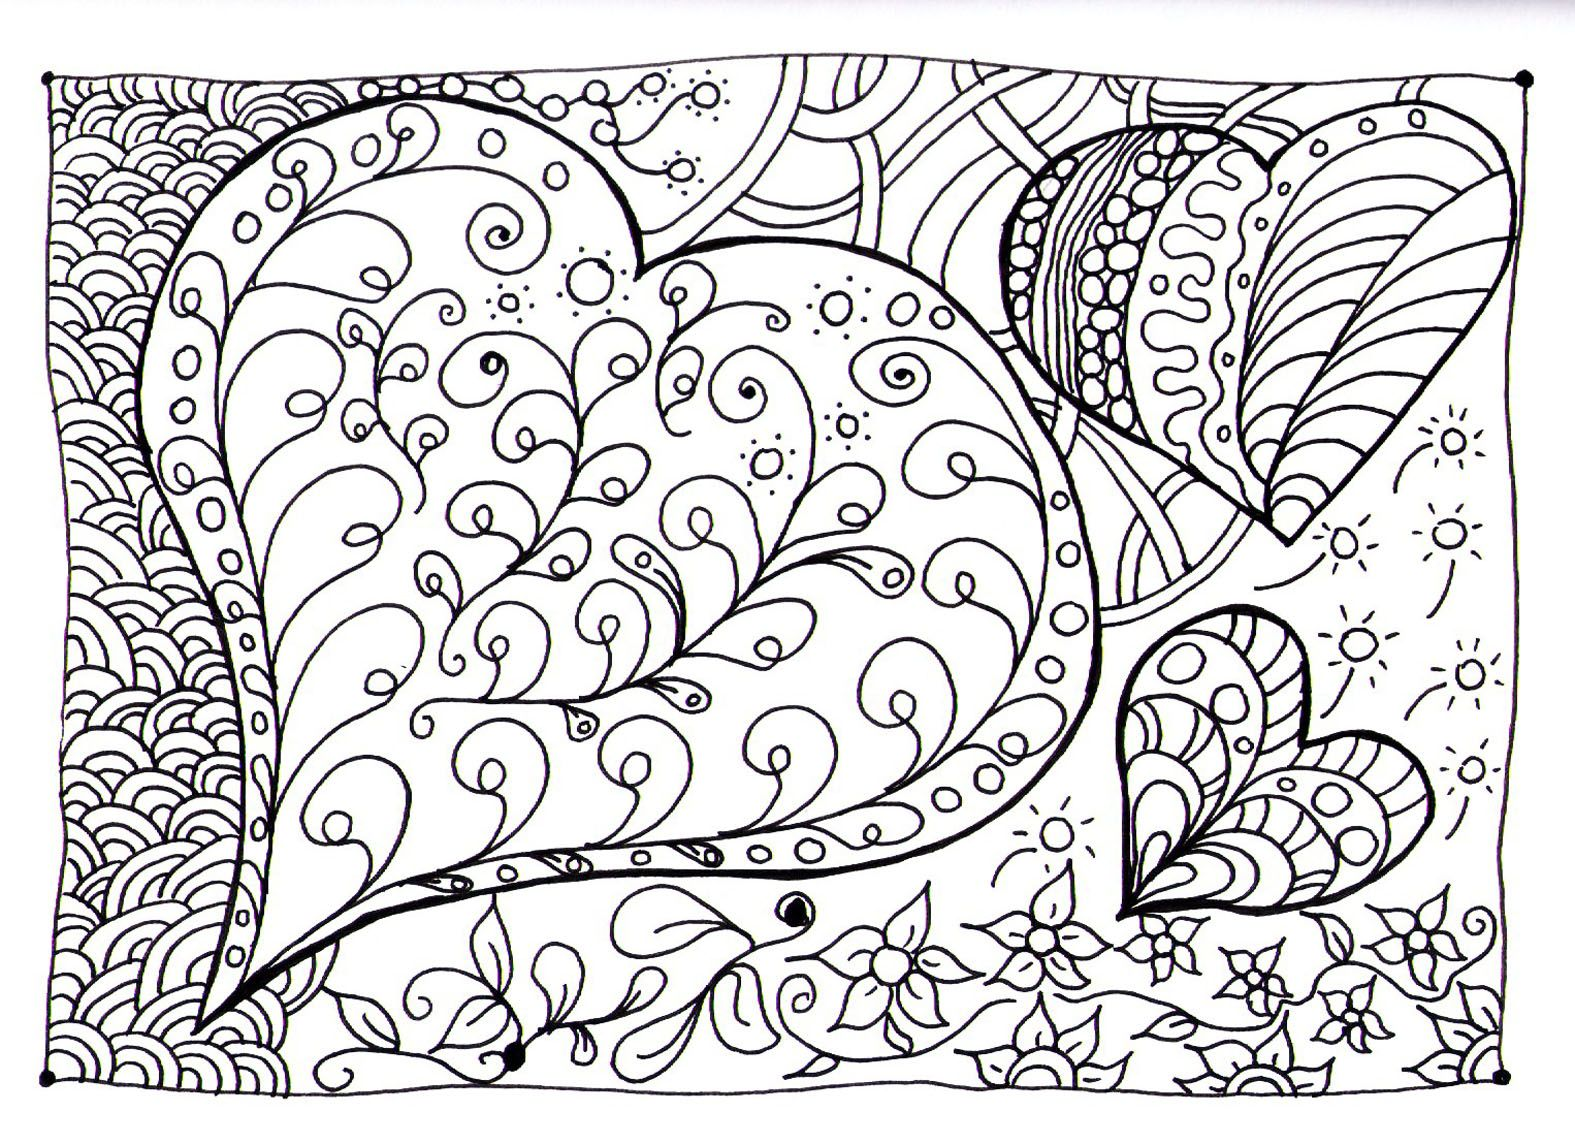 Adult zen anti stress heart zen coloring pages printable and coloring book to print for free find more coloring pages online for kids and adults of adult